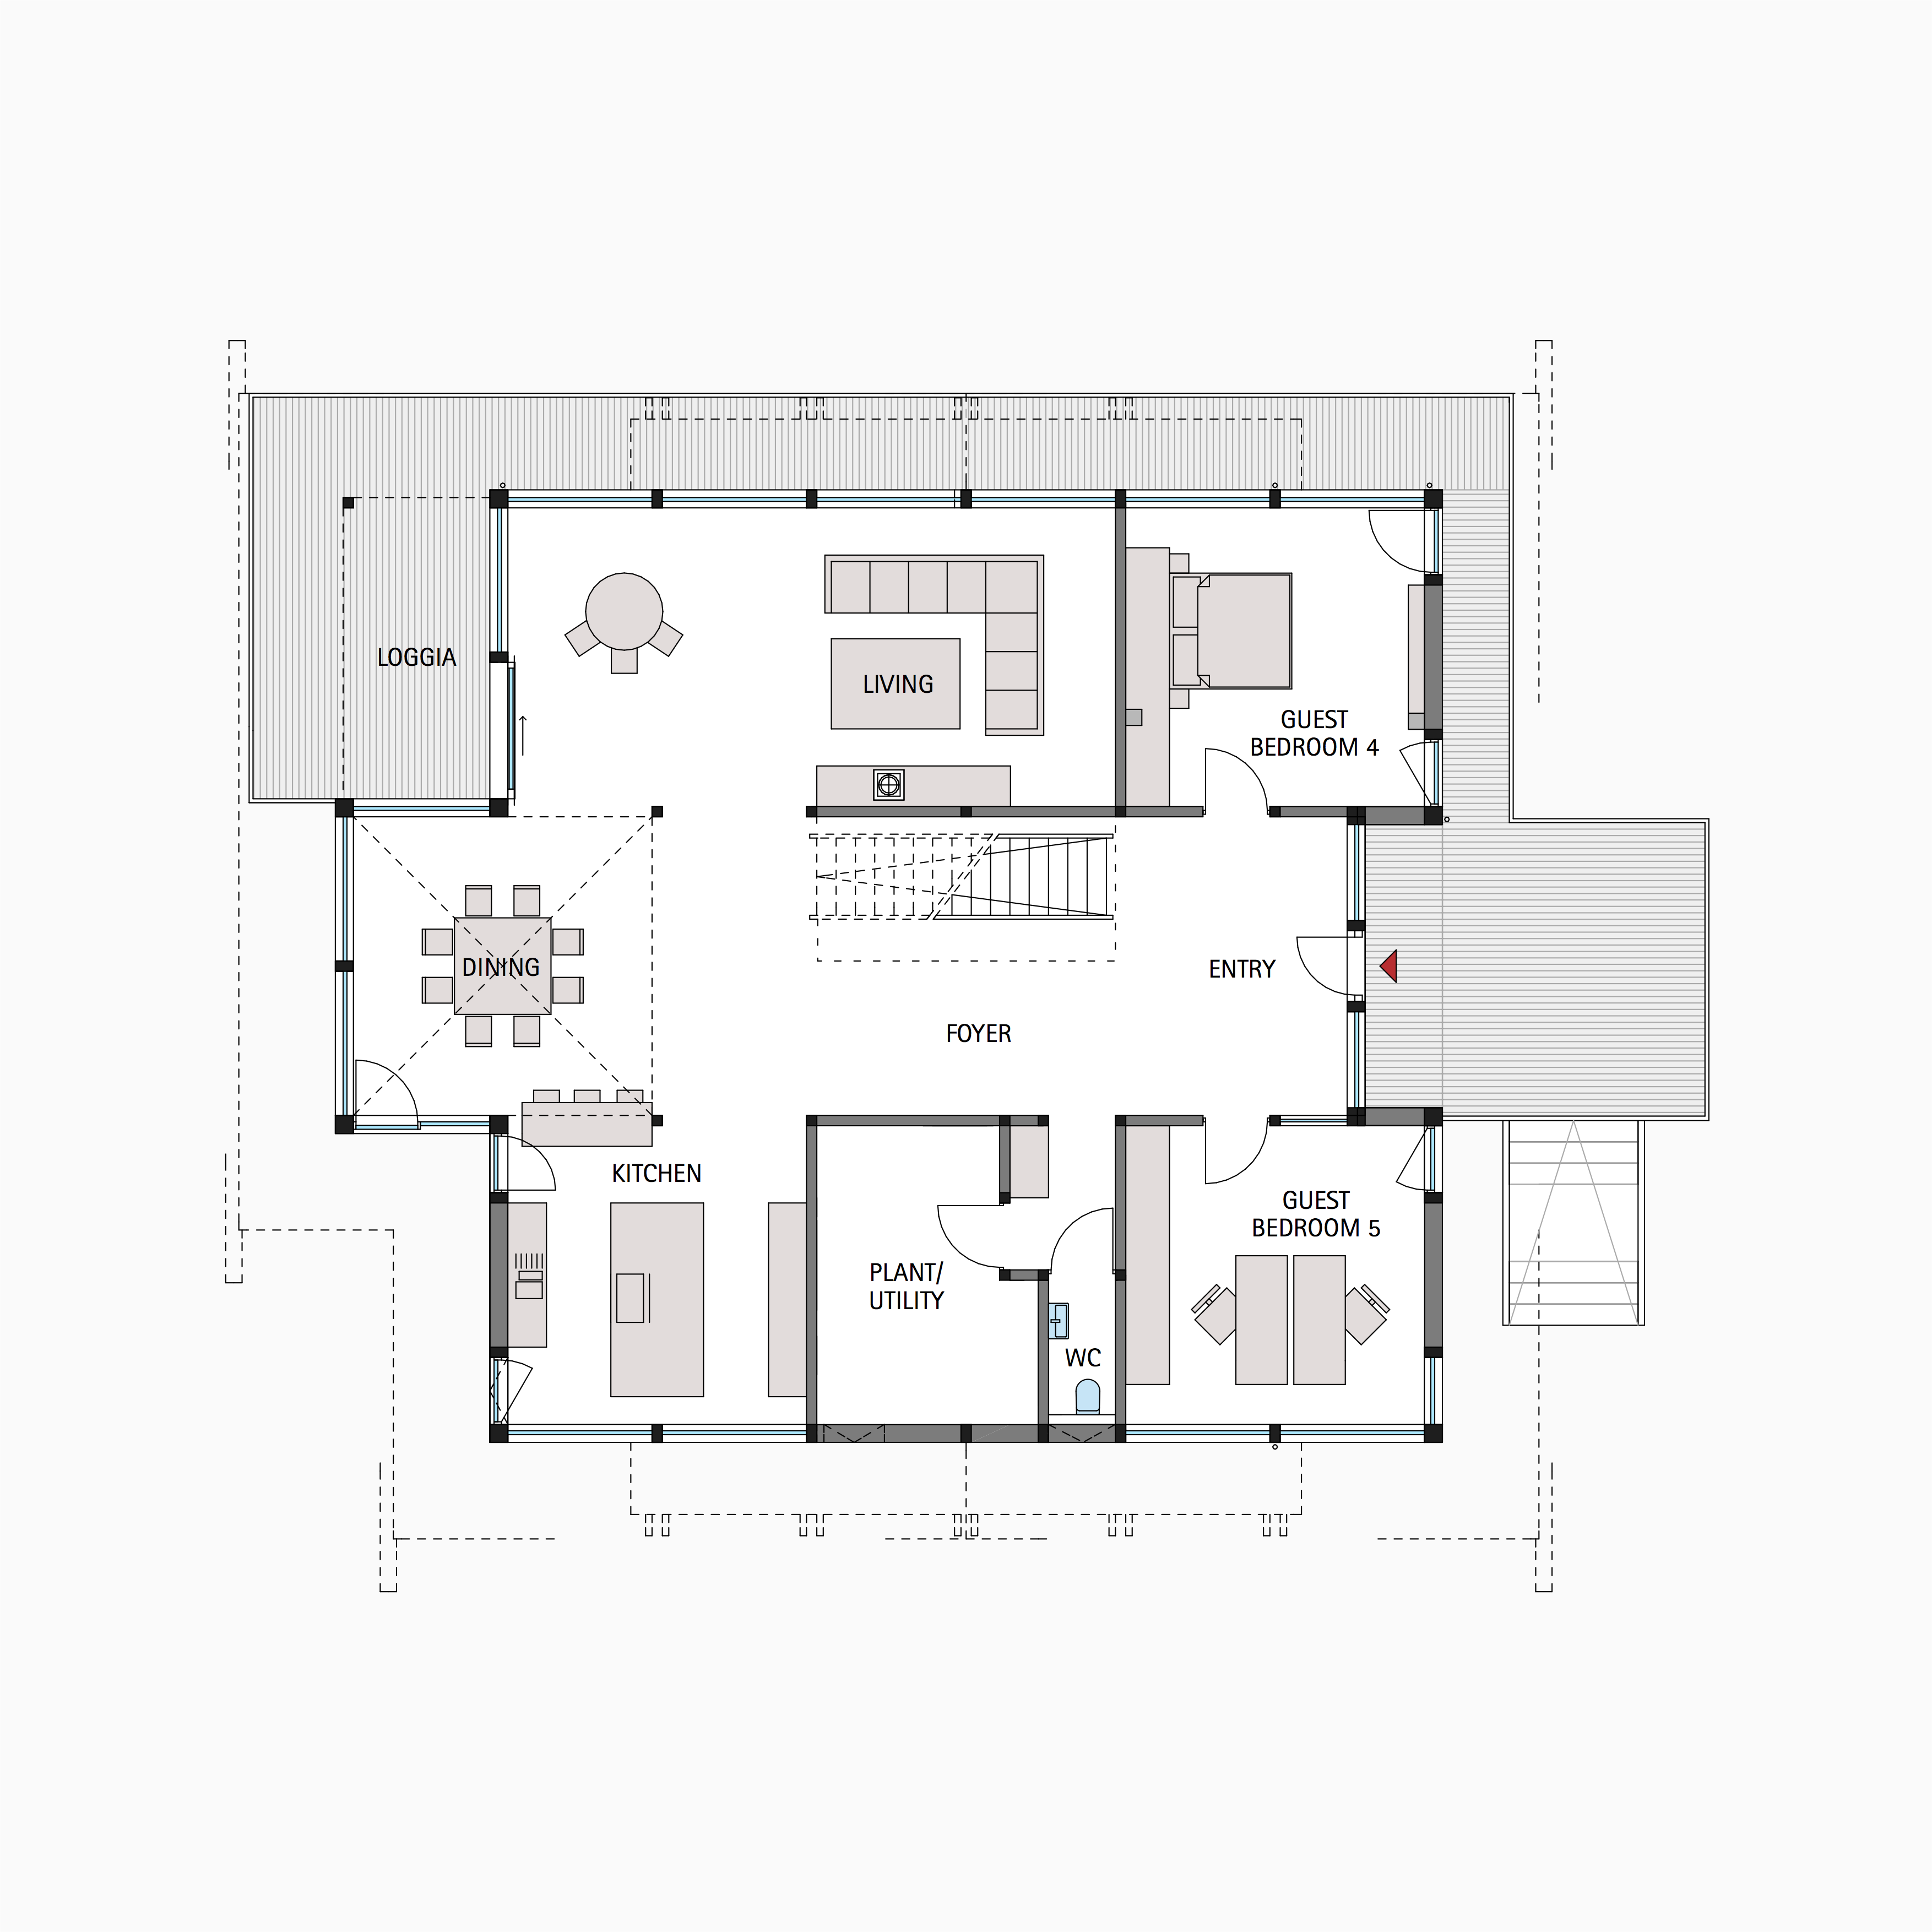 London huf haus for Haus plan